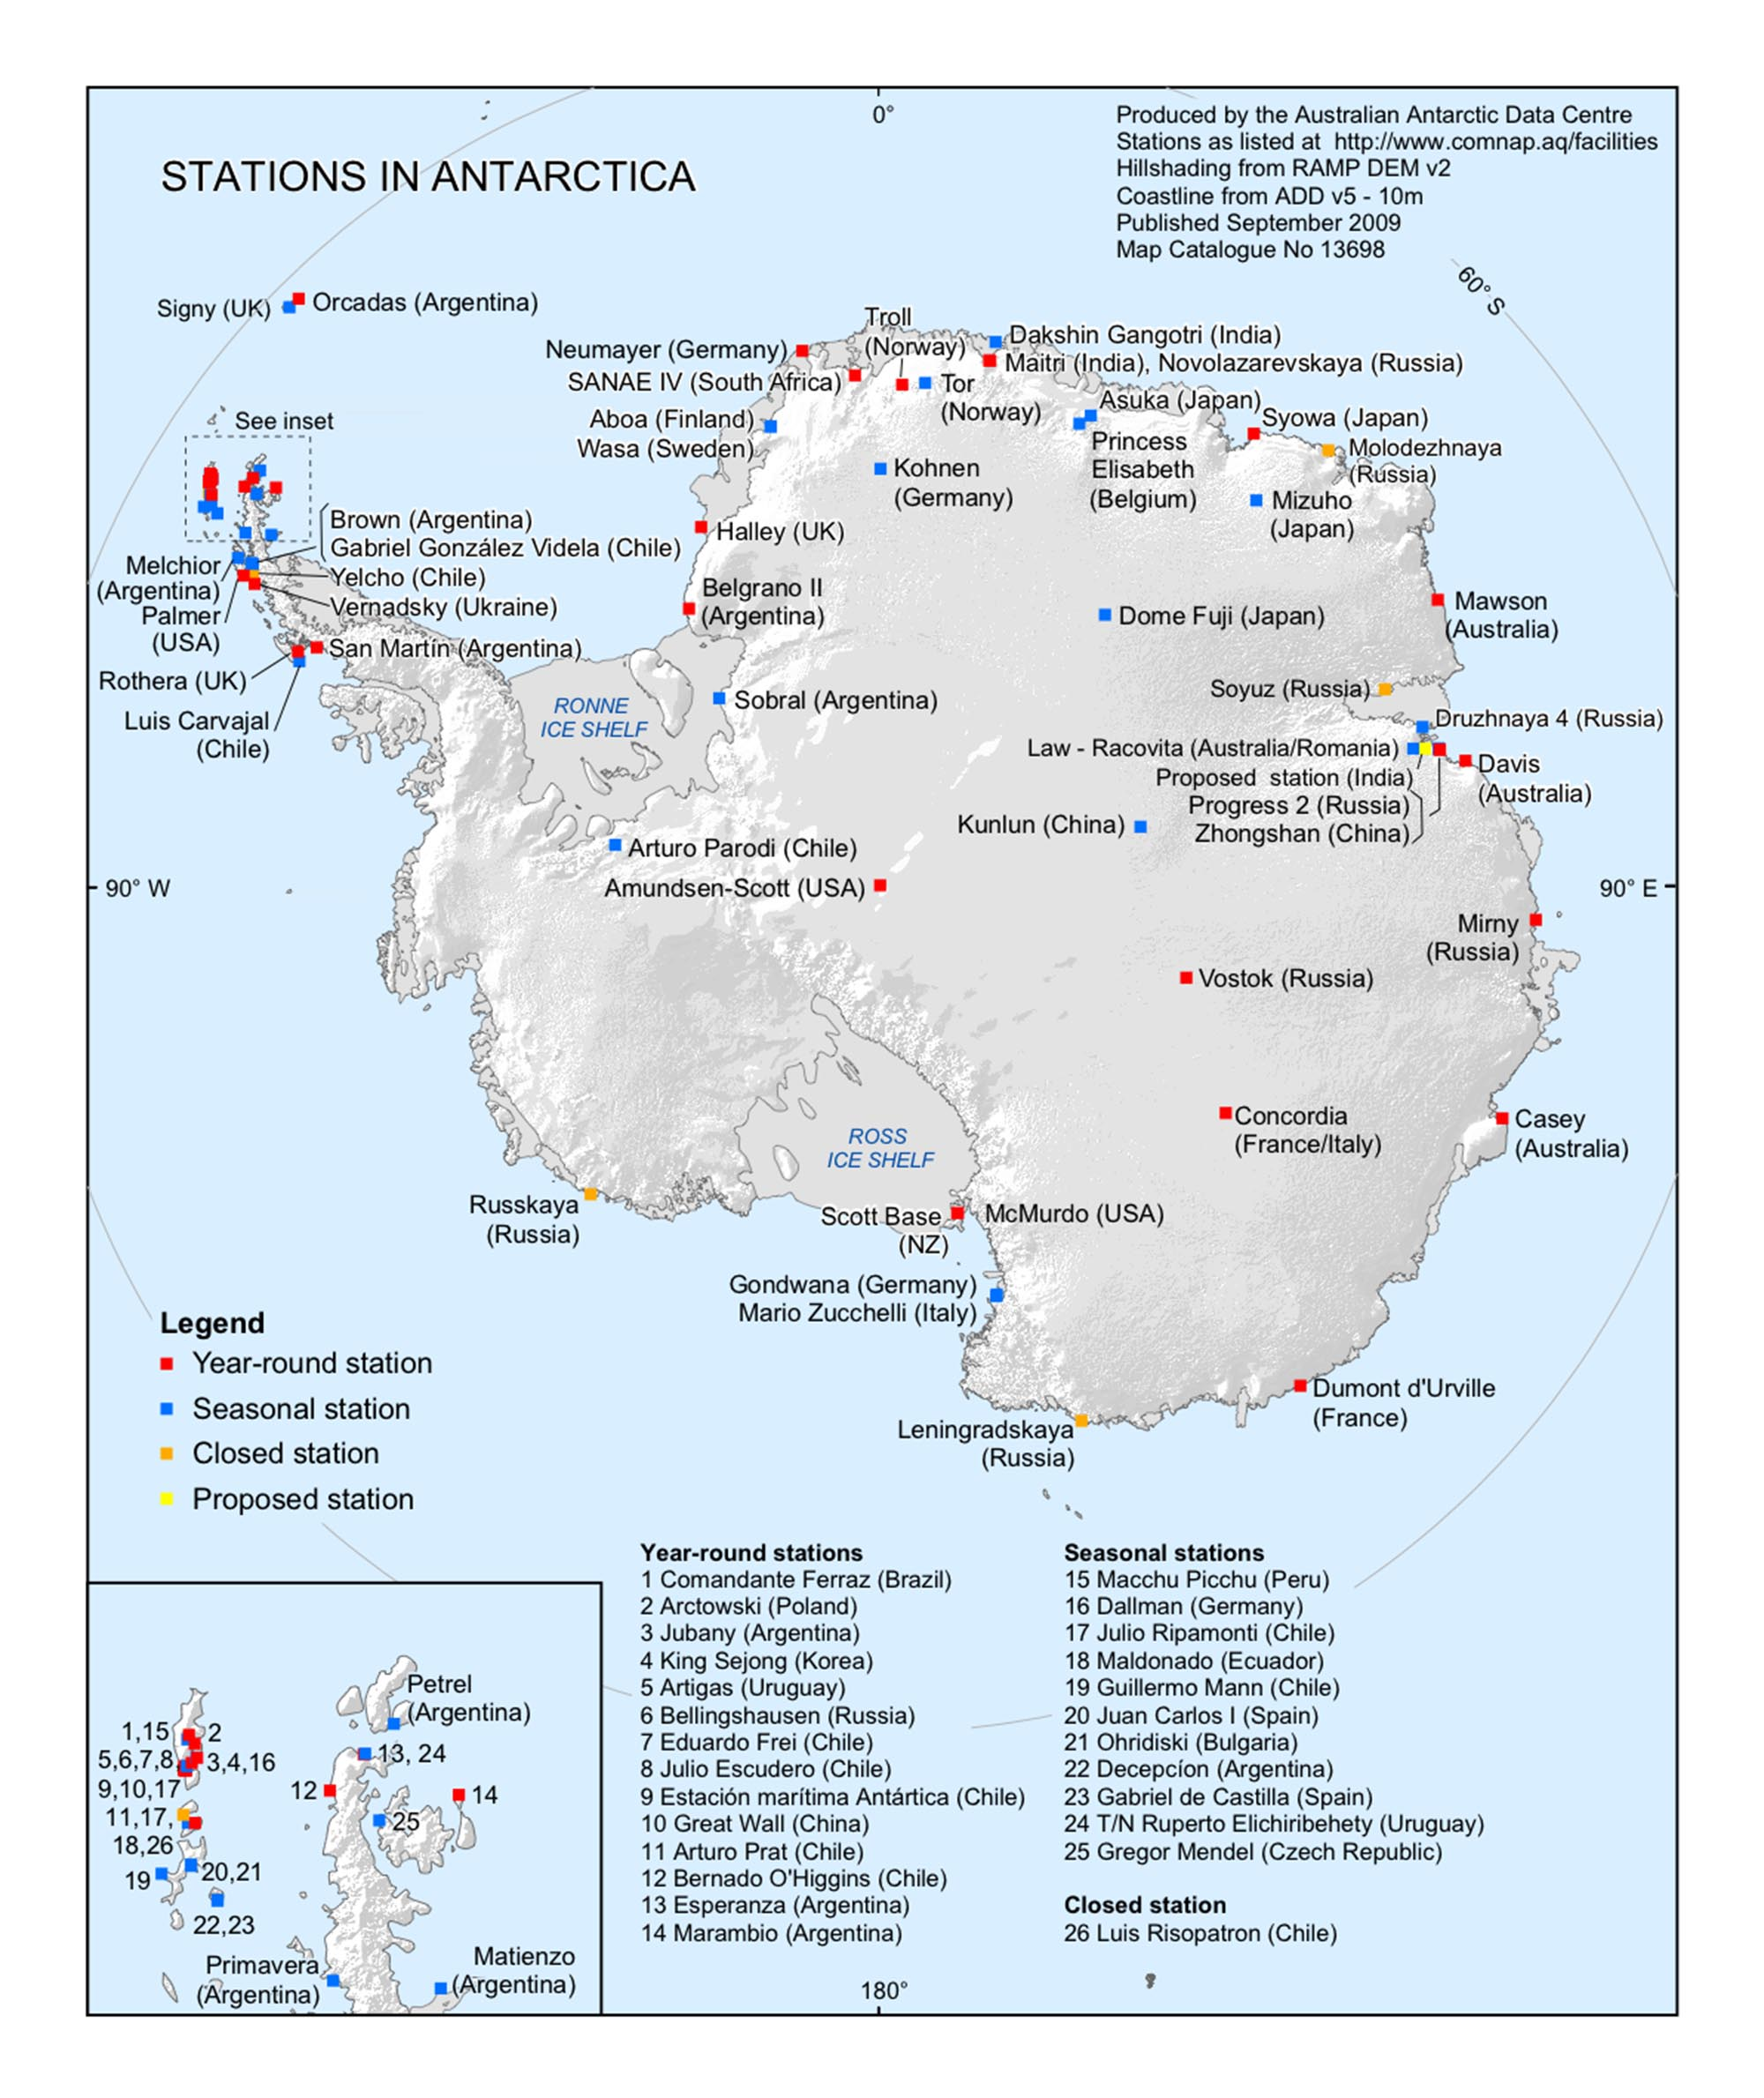 ! Antarctica_stations_map